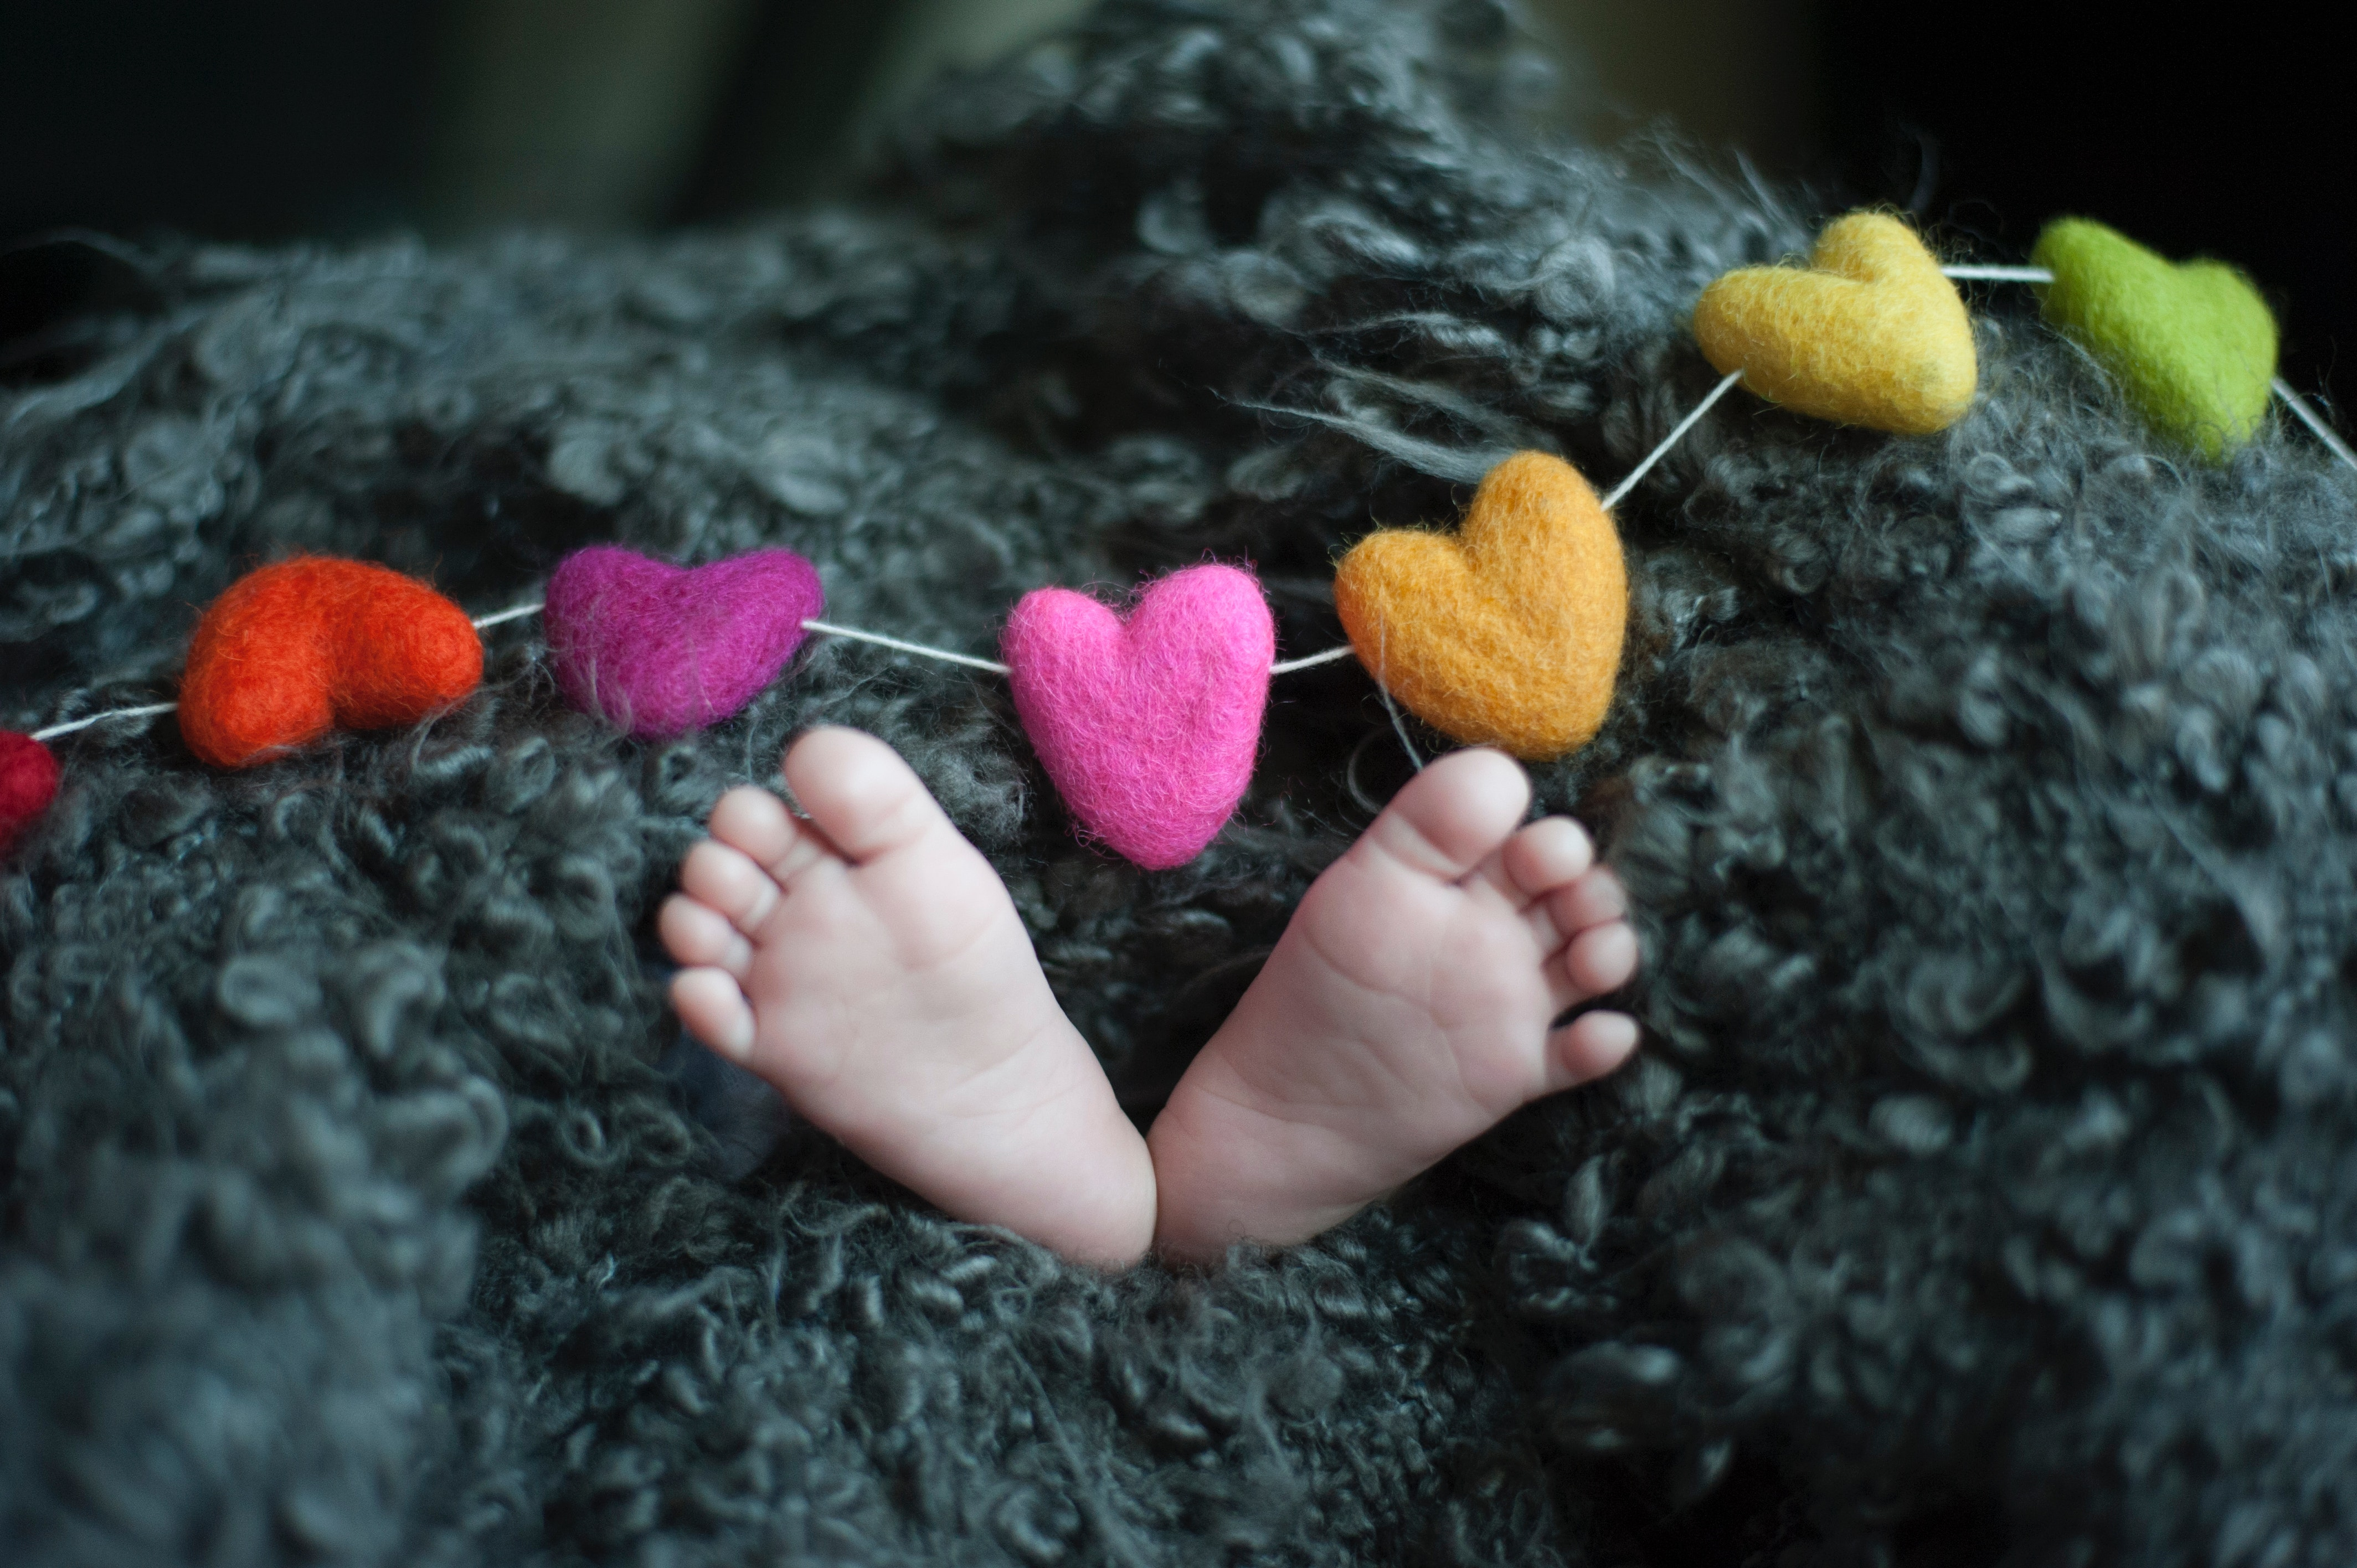 baby-feet-close-up-colors-668363